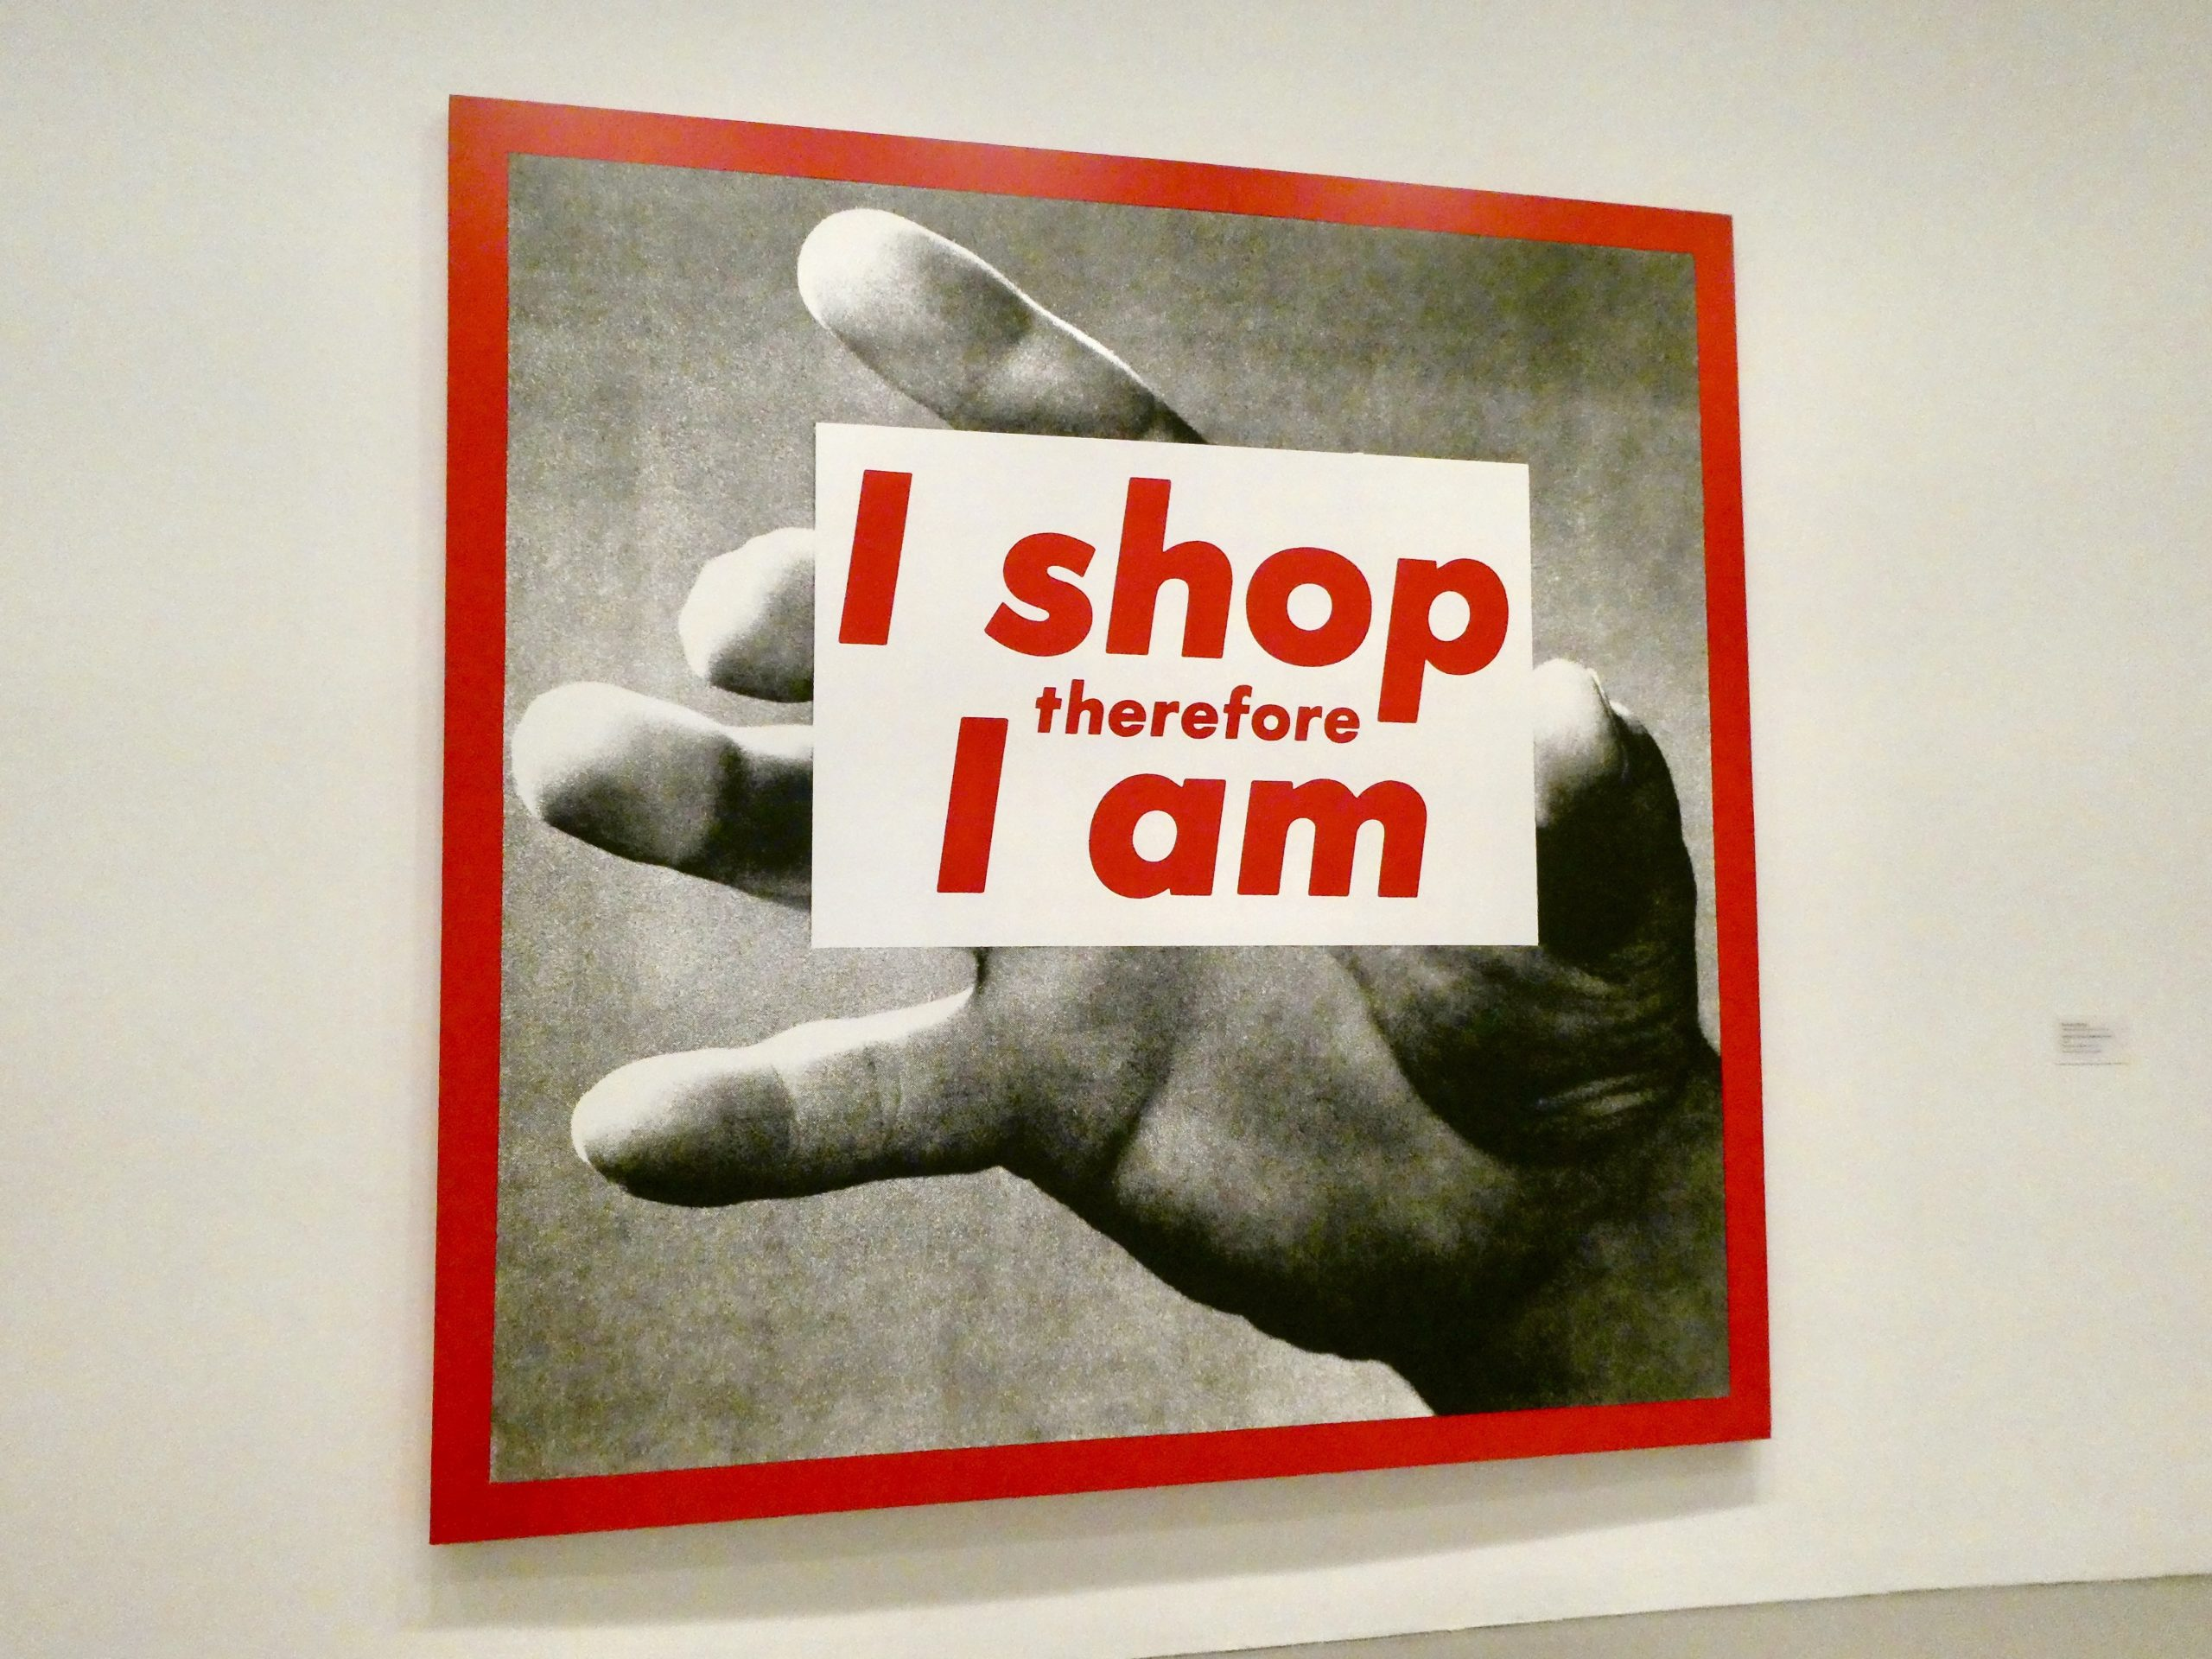 Barbara Kruger's I shop therefore I am - What you should know